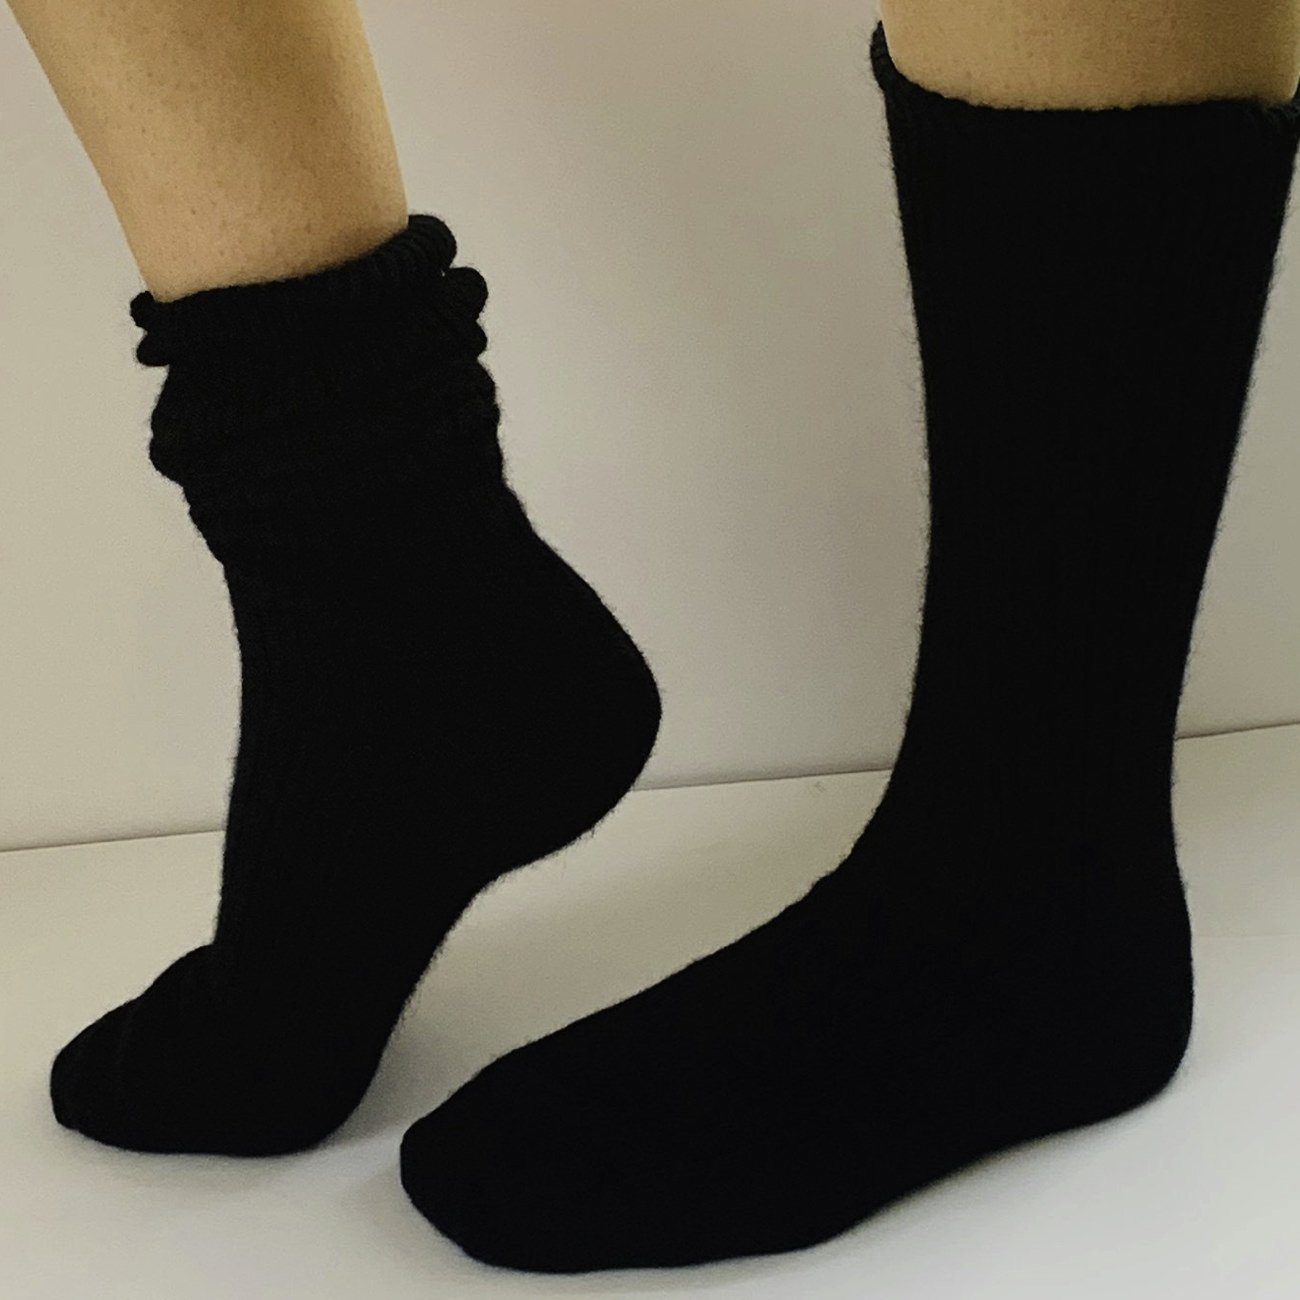 Mongrel Socks, Men's Rib Possum/Merino, Black Socks Mongrel Socks Black Large